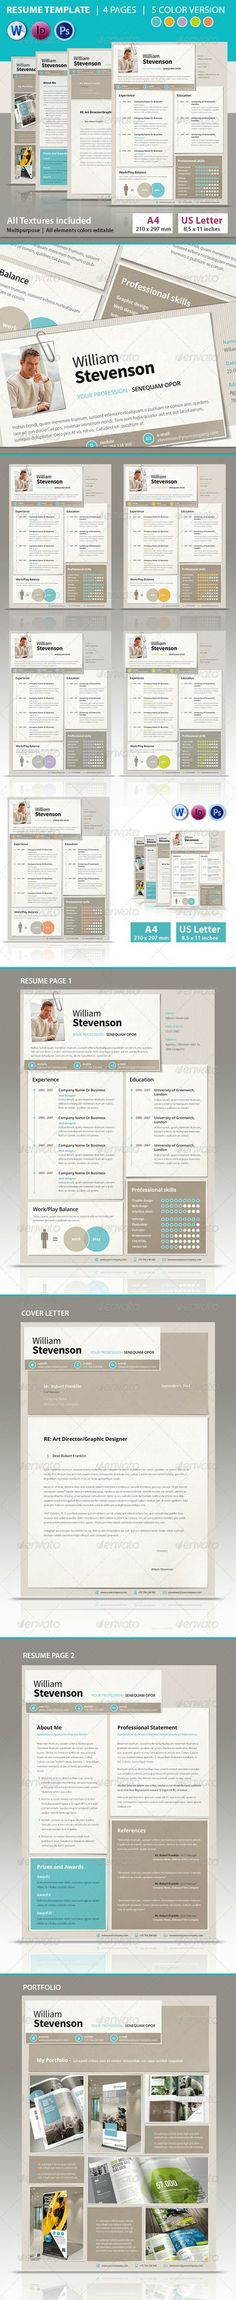 57 best go sumo cv templates